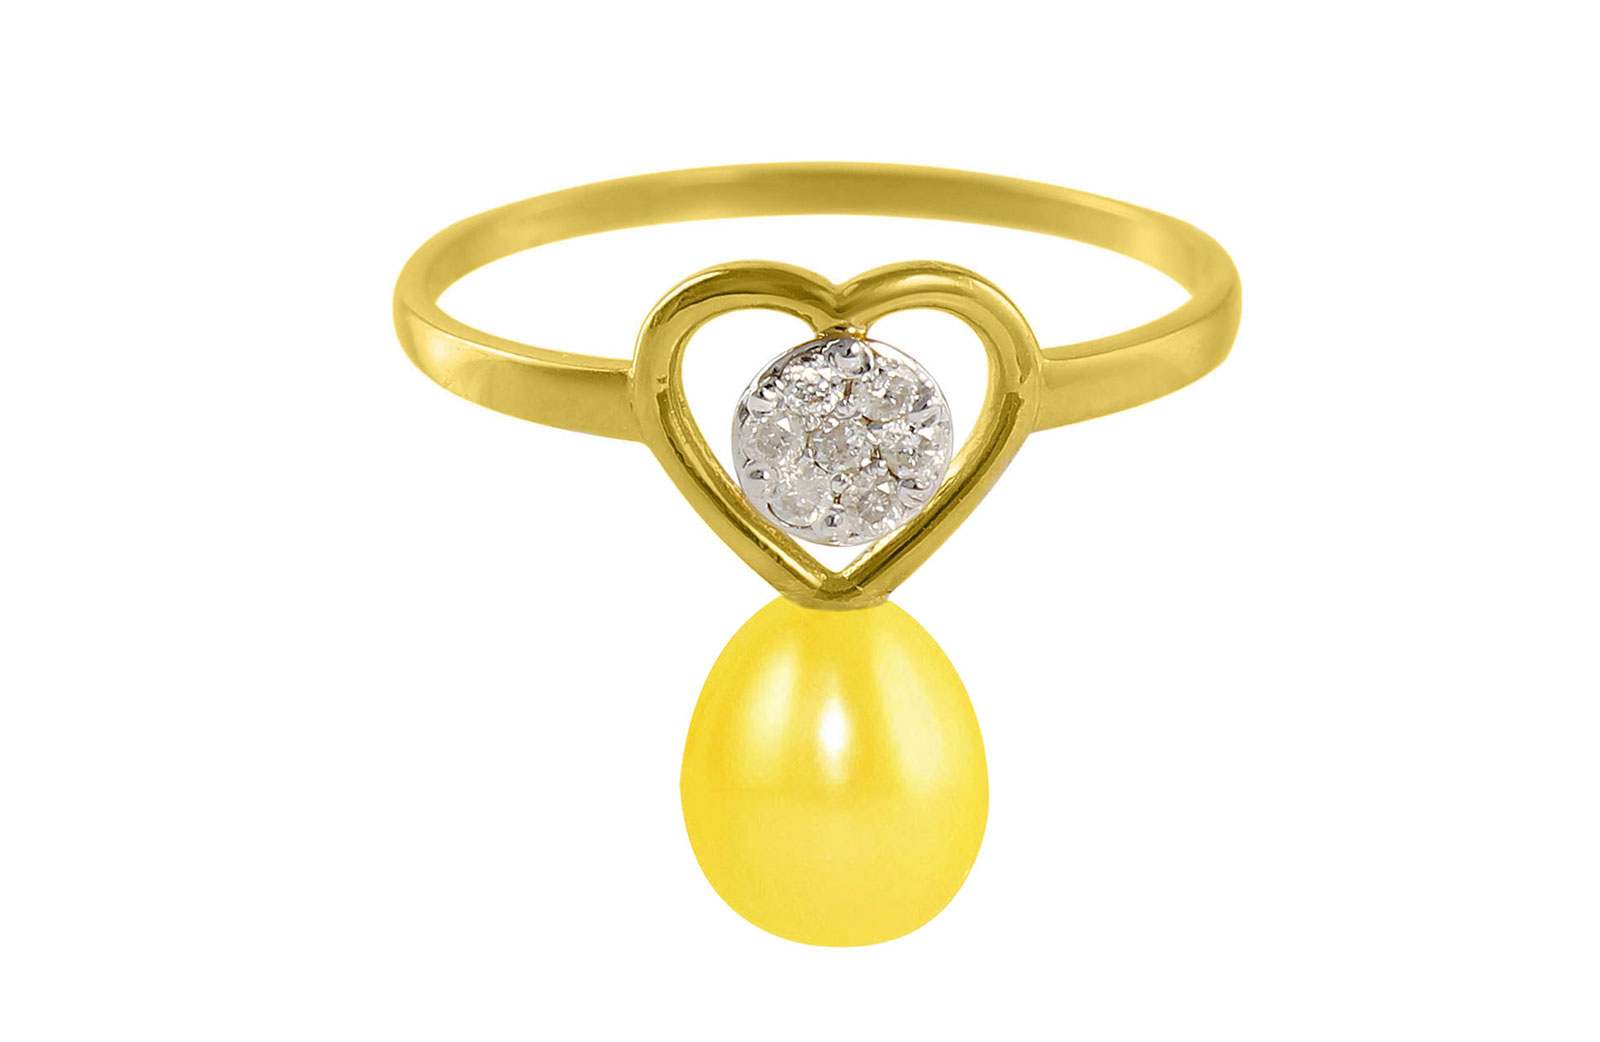 VP Jewels 18K Solid Gold 0.07ct Genuine Diamond and 7mm Yellow Pearl Heart Ring - Size US 7